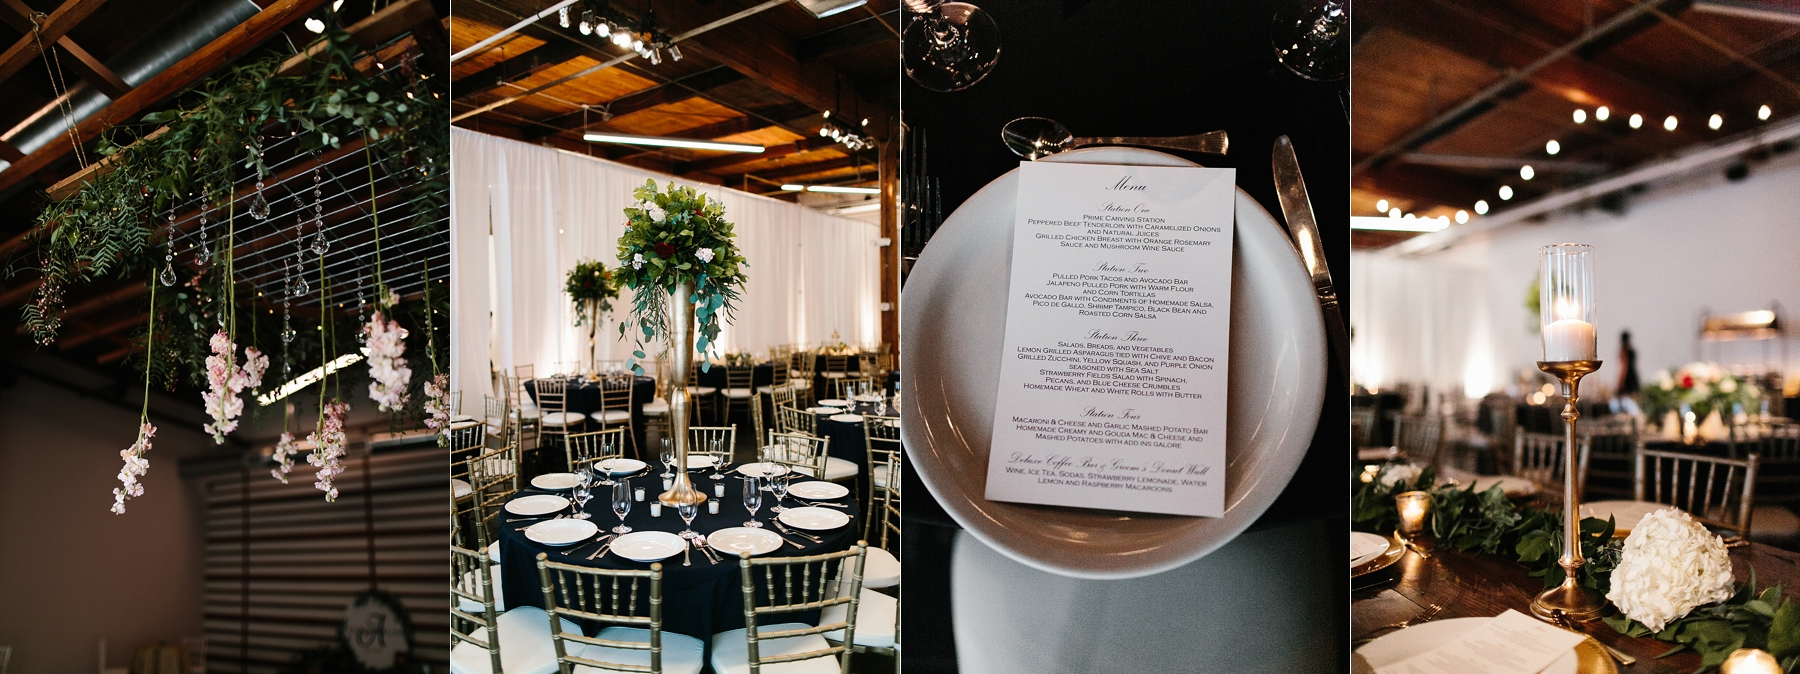 Emily + Caleb _ an elegant, intentional, industrial style wedding with navy + gold accents at 6500 in Dallas, TX by North Texas Wedding Photographer Rachel Meagan Photography _ 071